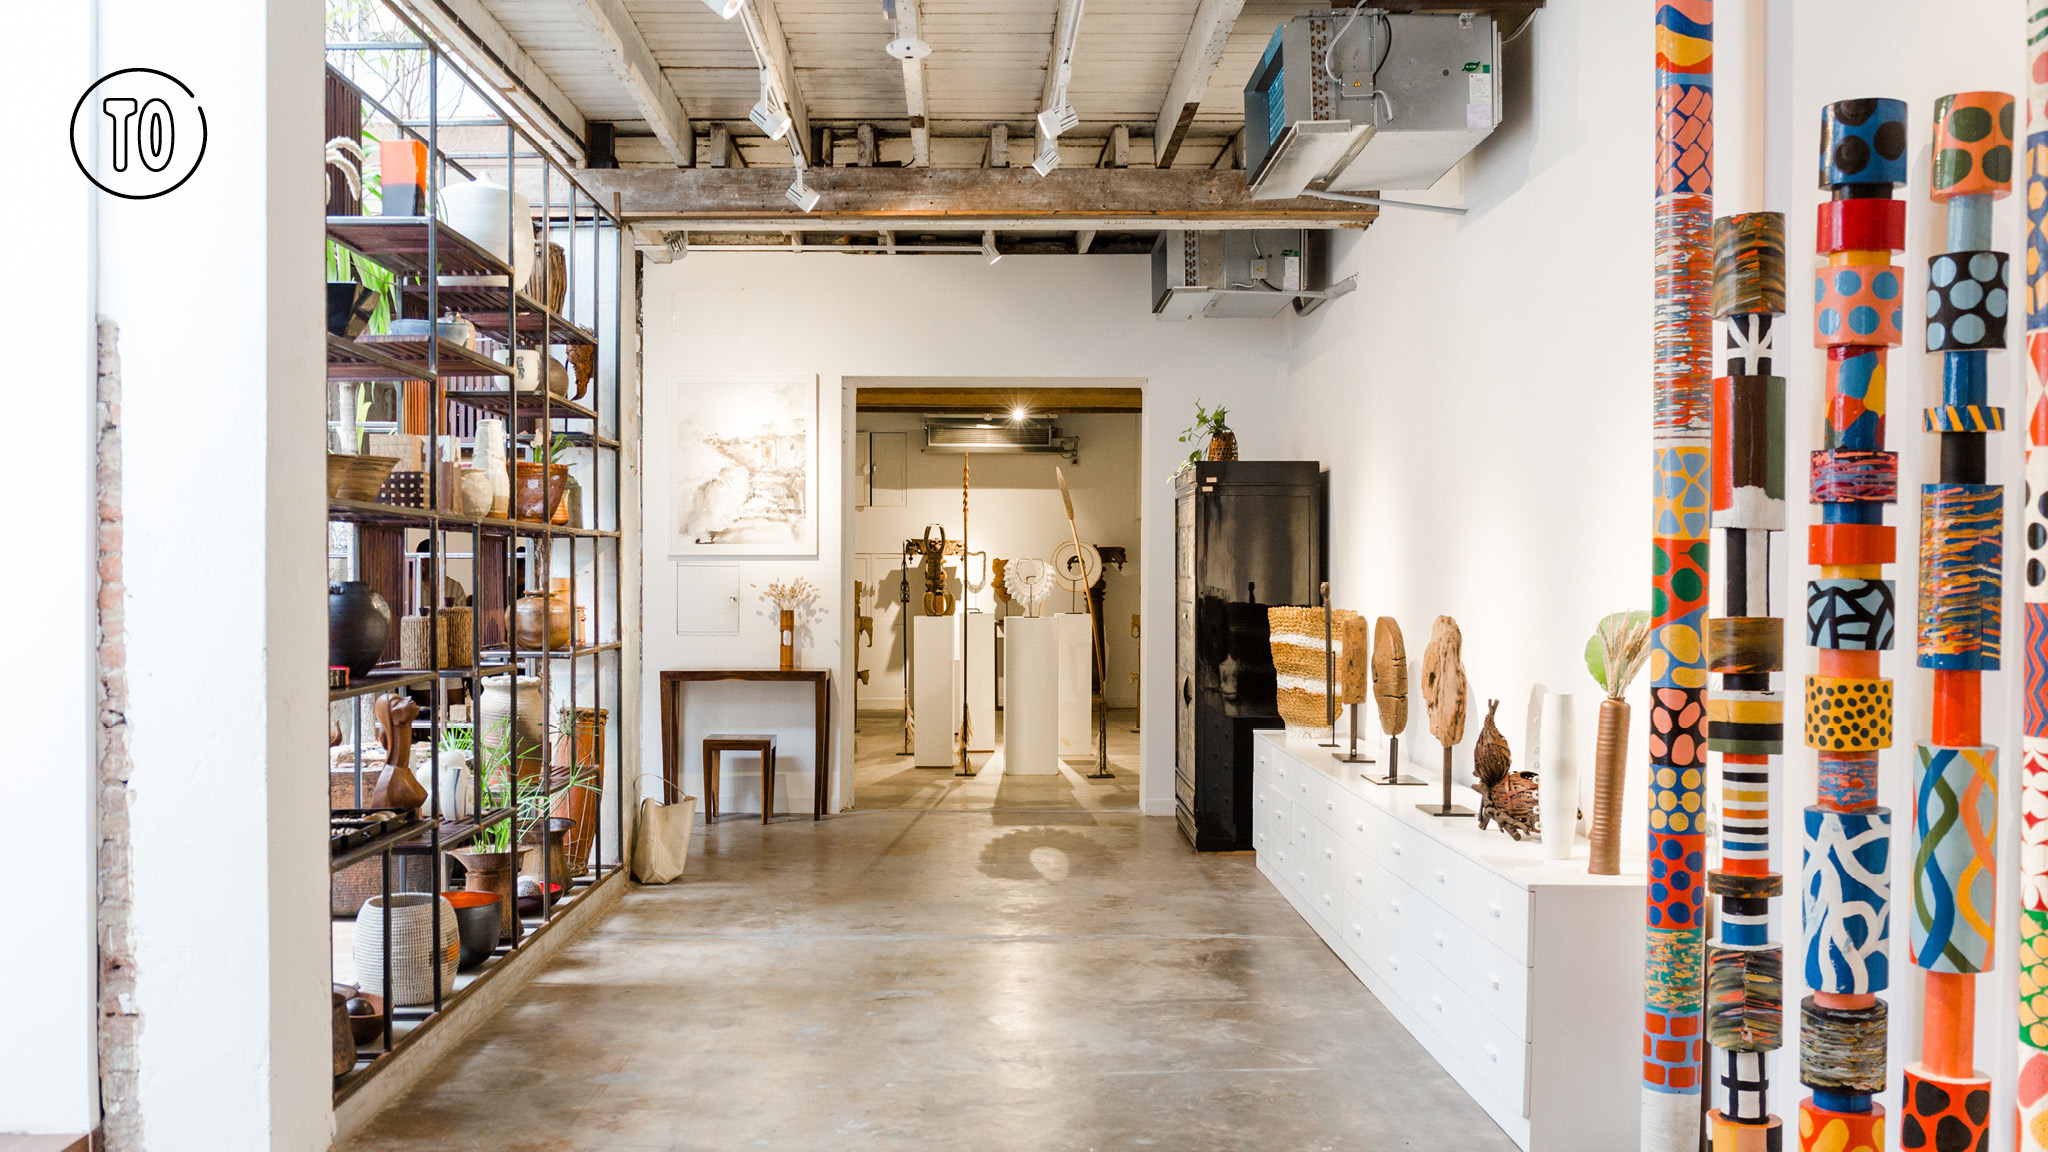 Best art museums and galleries in Charoenkrung